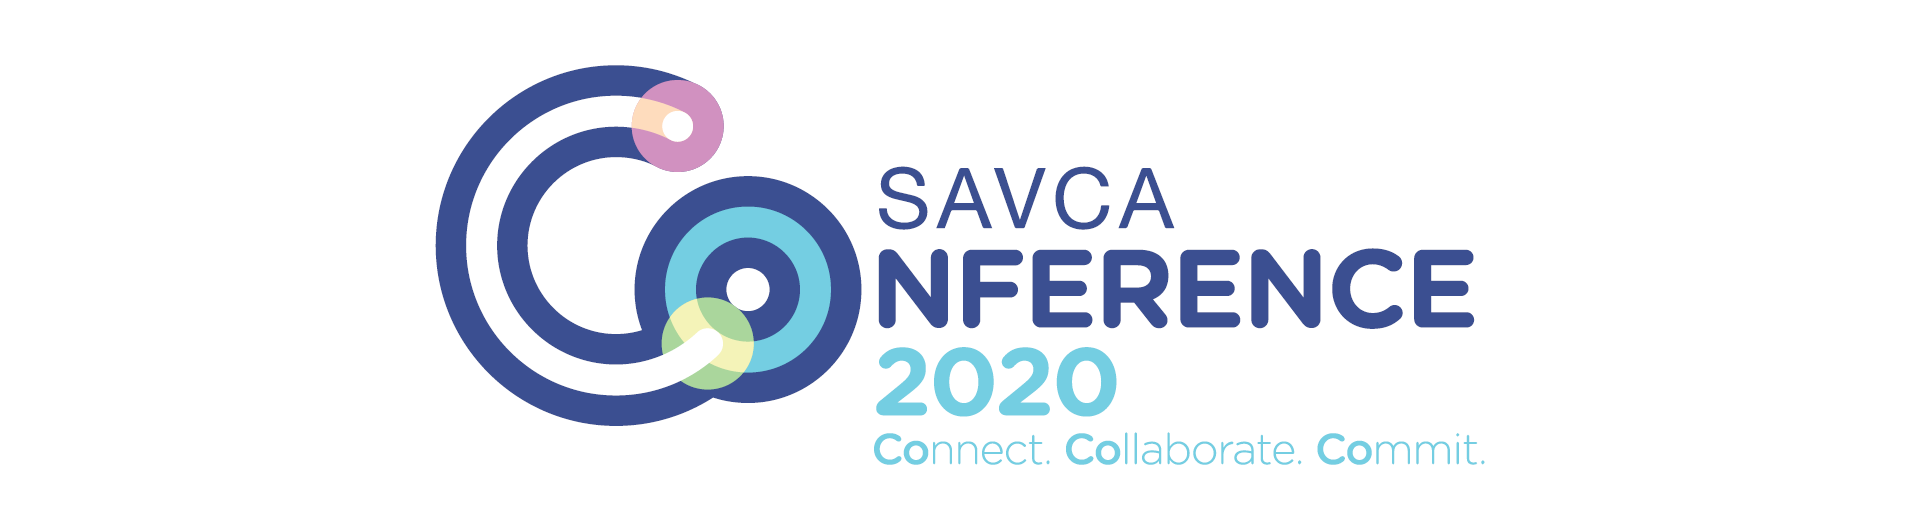 SAVCA-Conference-2020-Header